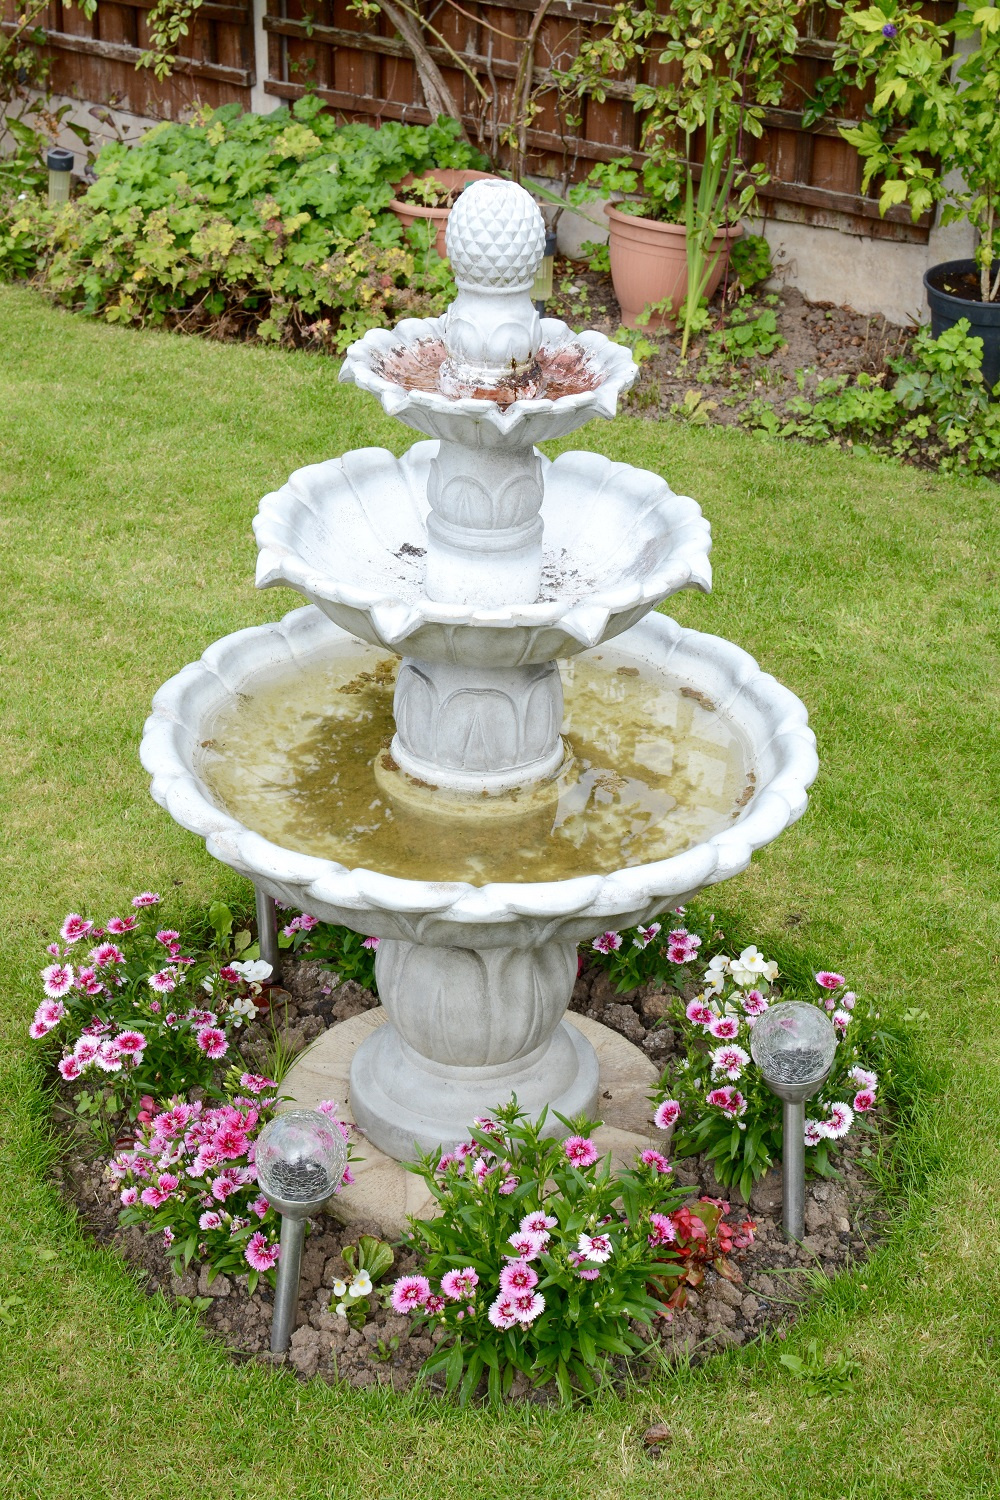 Small 3 tier water fountain with flowers around base